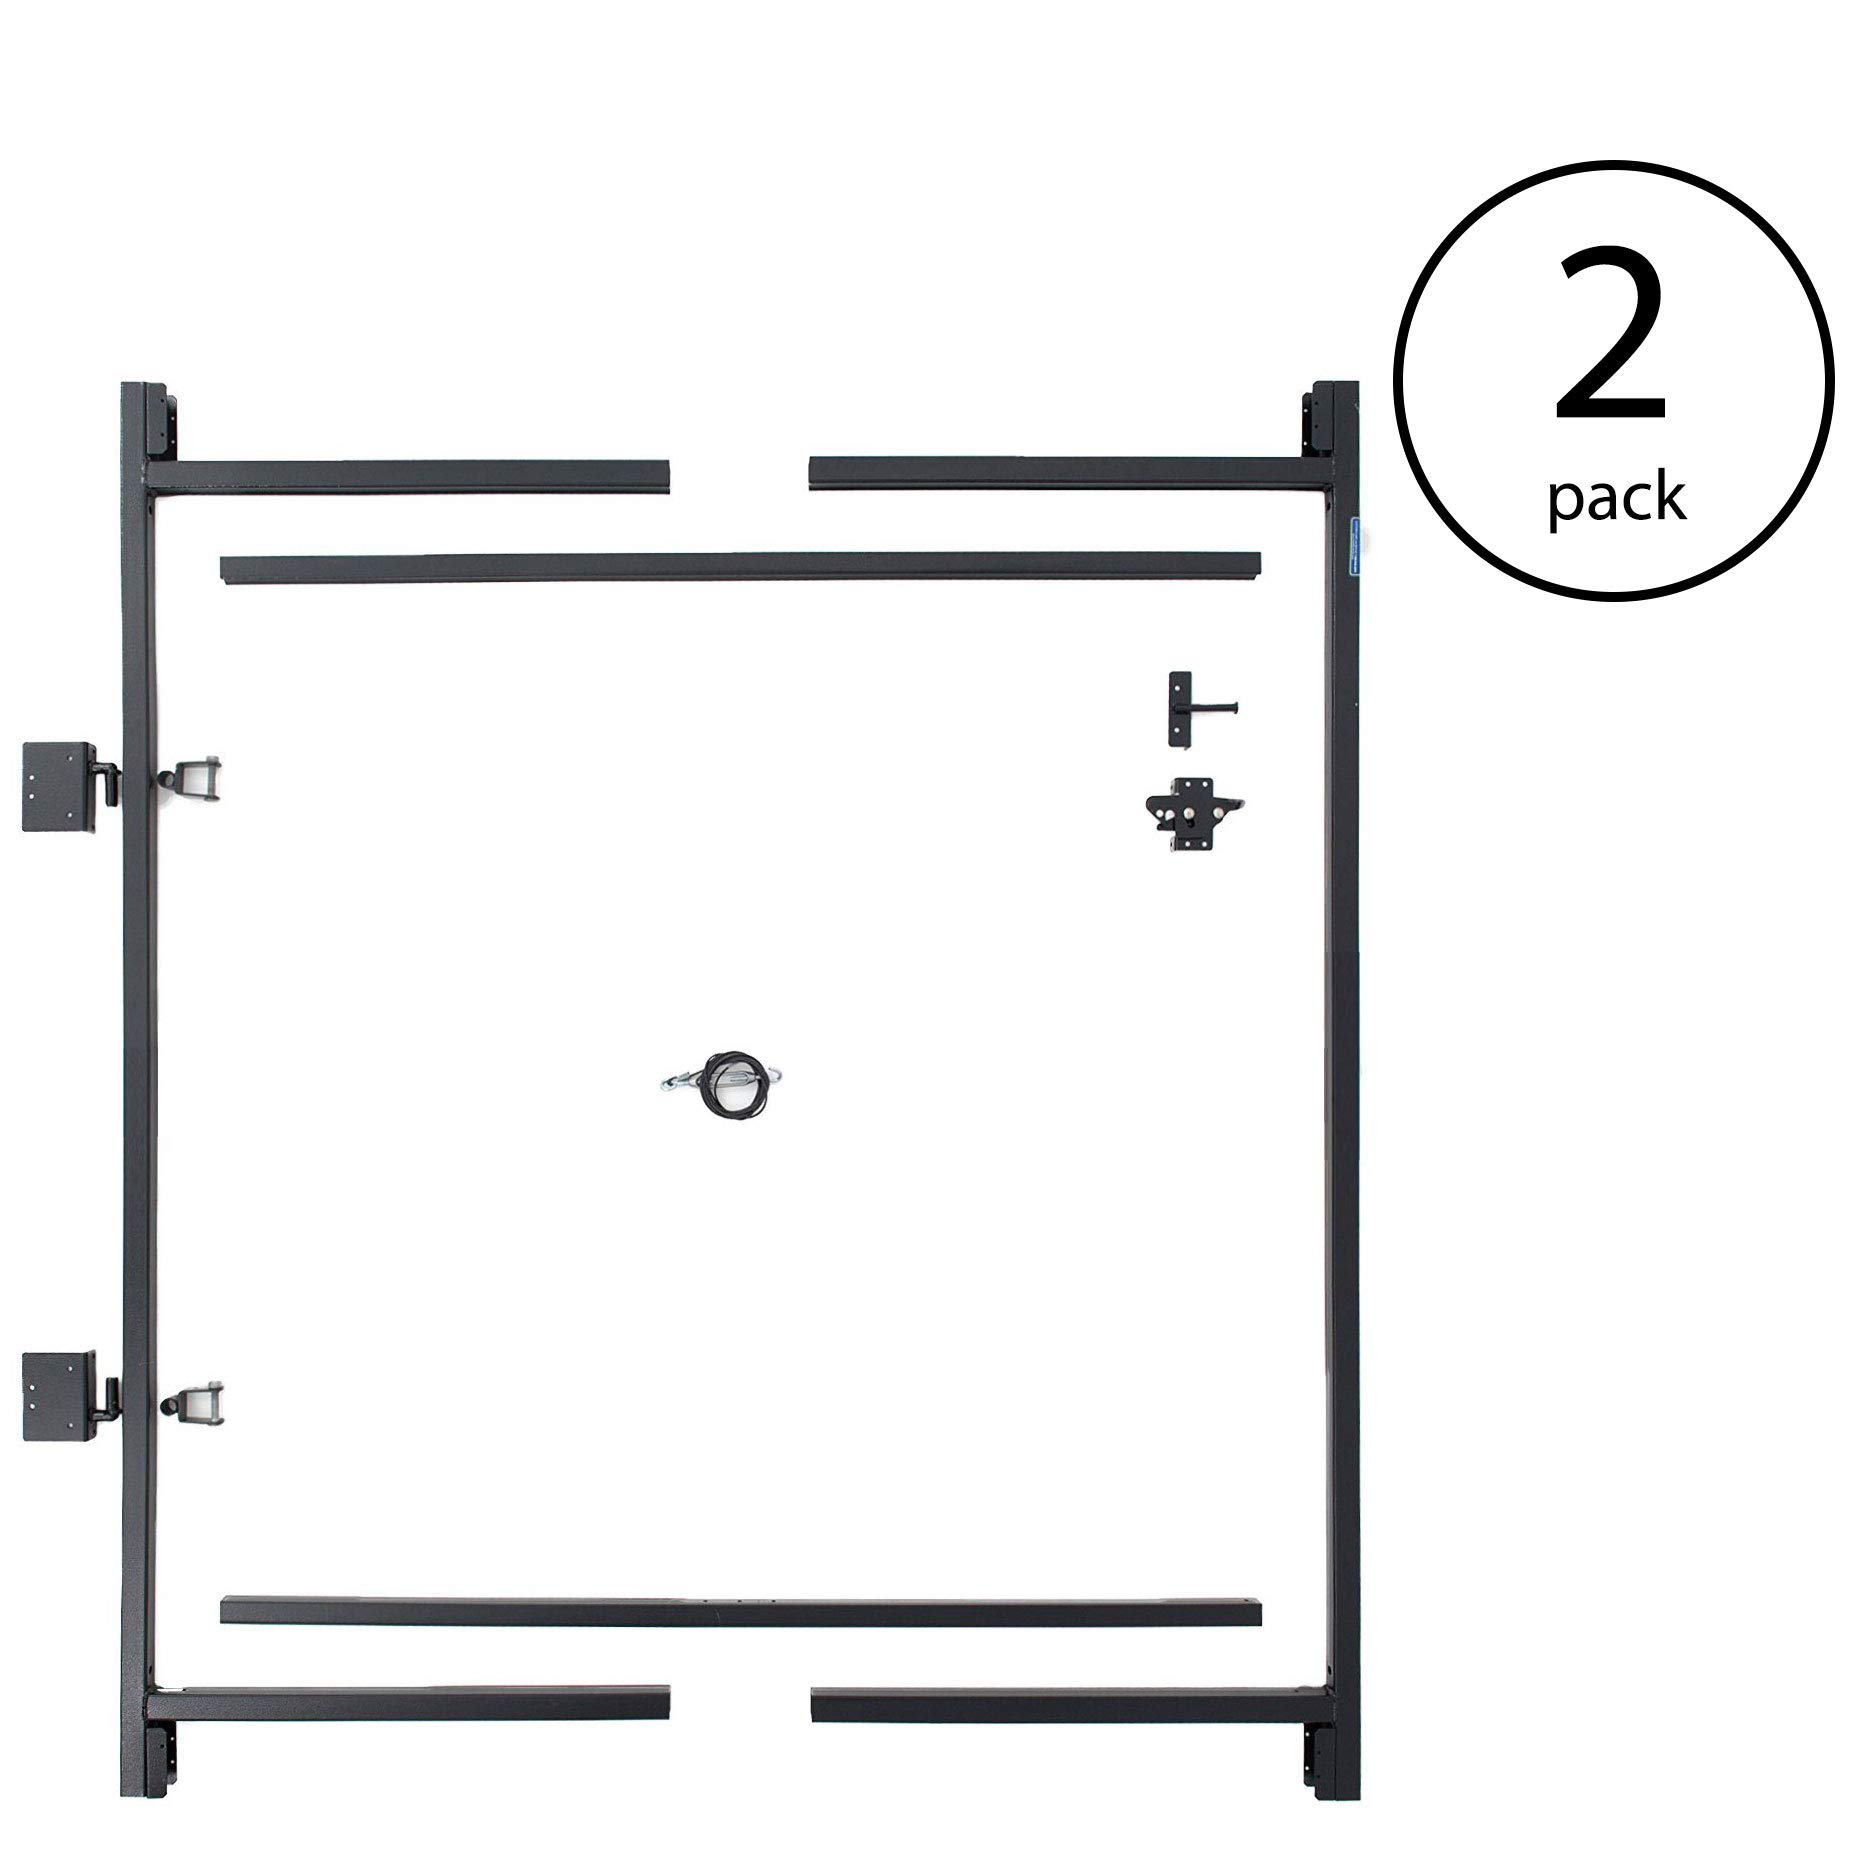 Adjust-A-Gate Steel Frame Gate Building Kit, 60''-96'' Wide Opening Up to 5' High (2 Pack)